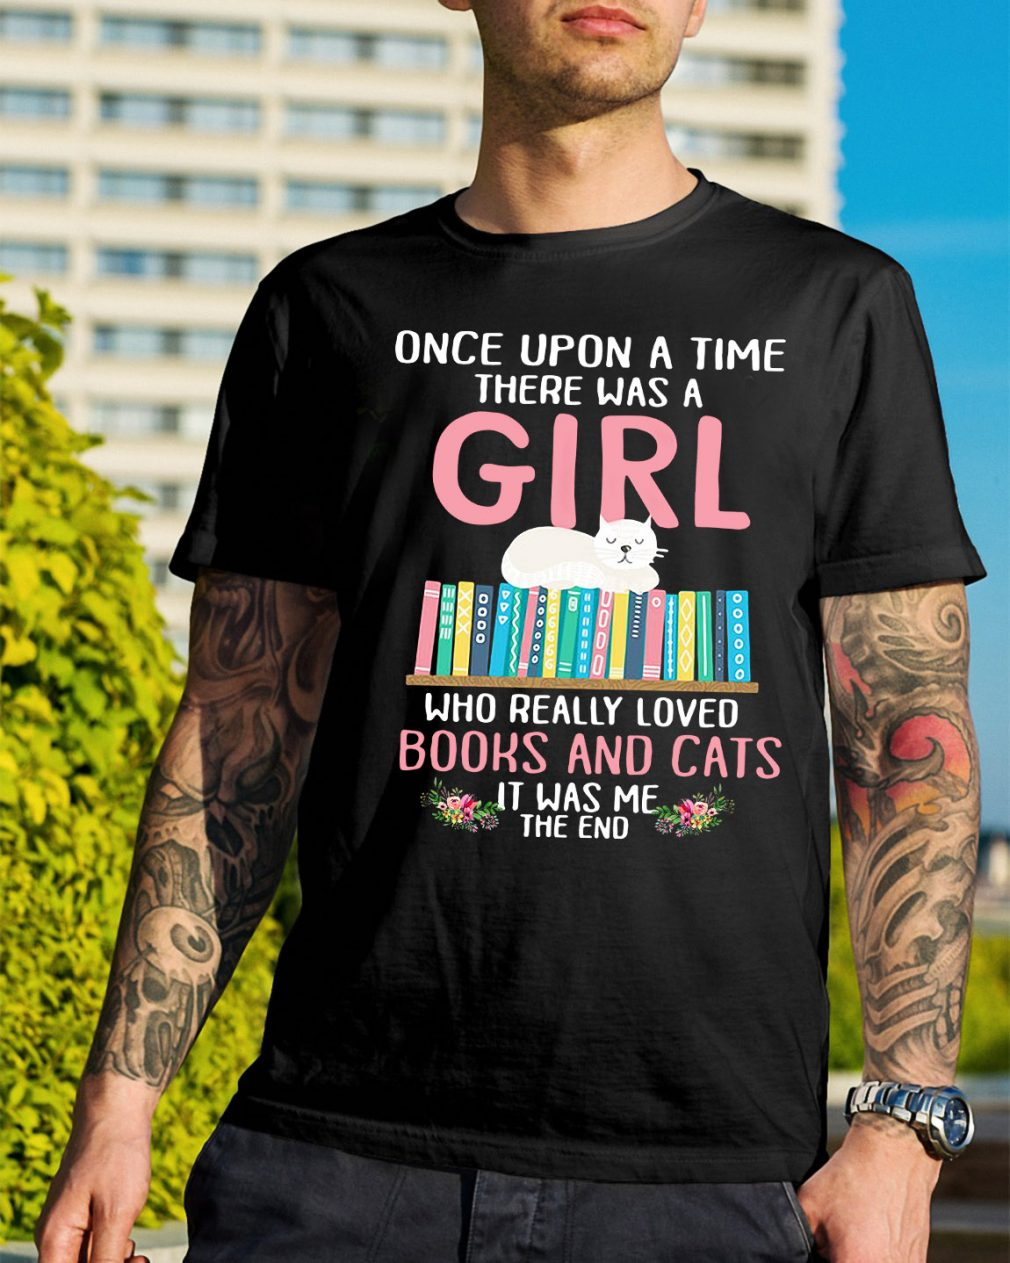 A girl who really loved books and cats it was me the end shirt